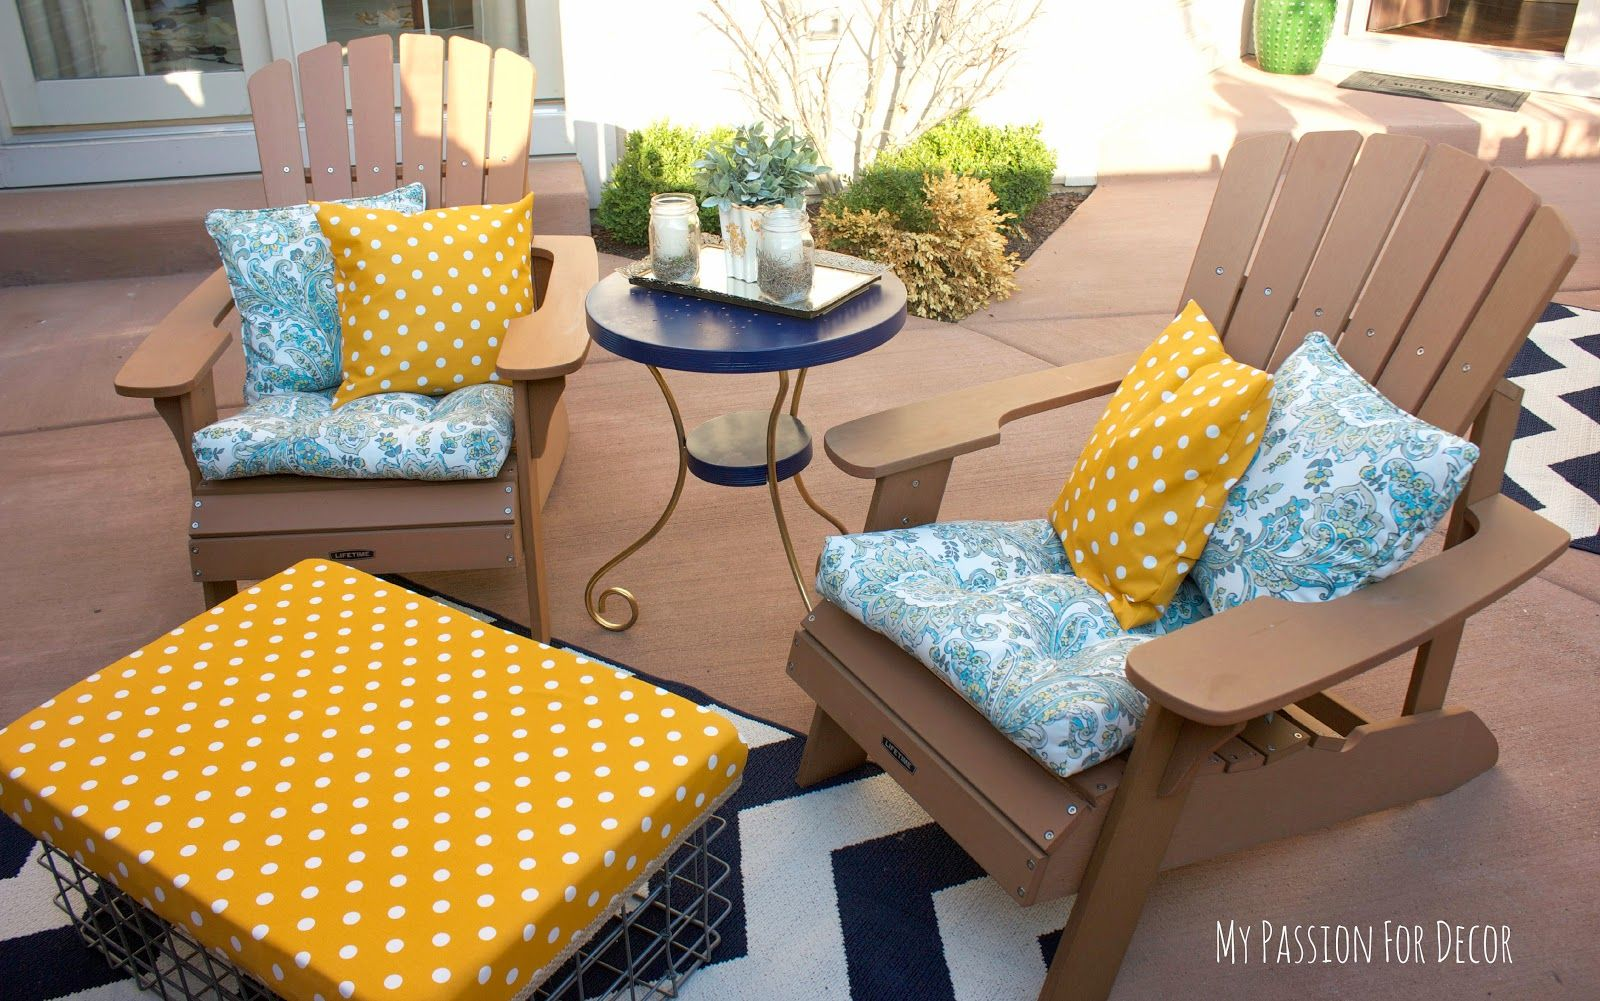 My Passion For Decor: My Bright And Sunny Outdoor Ottoman...Bring On The Polka Dots!  DIY outdoor ottoman using Yellow Polka Dot Outdoor fabric by Premier Prints via the Online Fabric Store.  www.onlinefabricstore.net